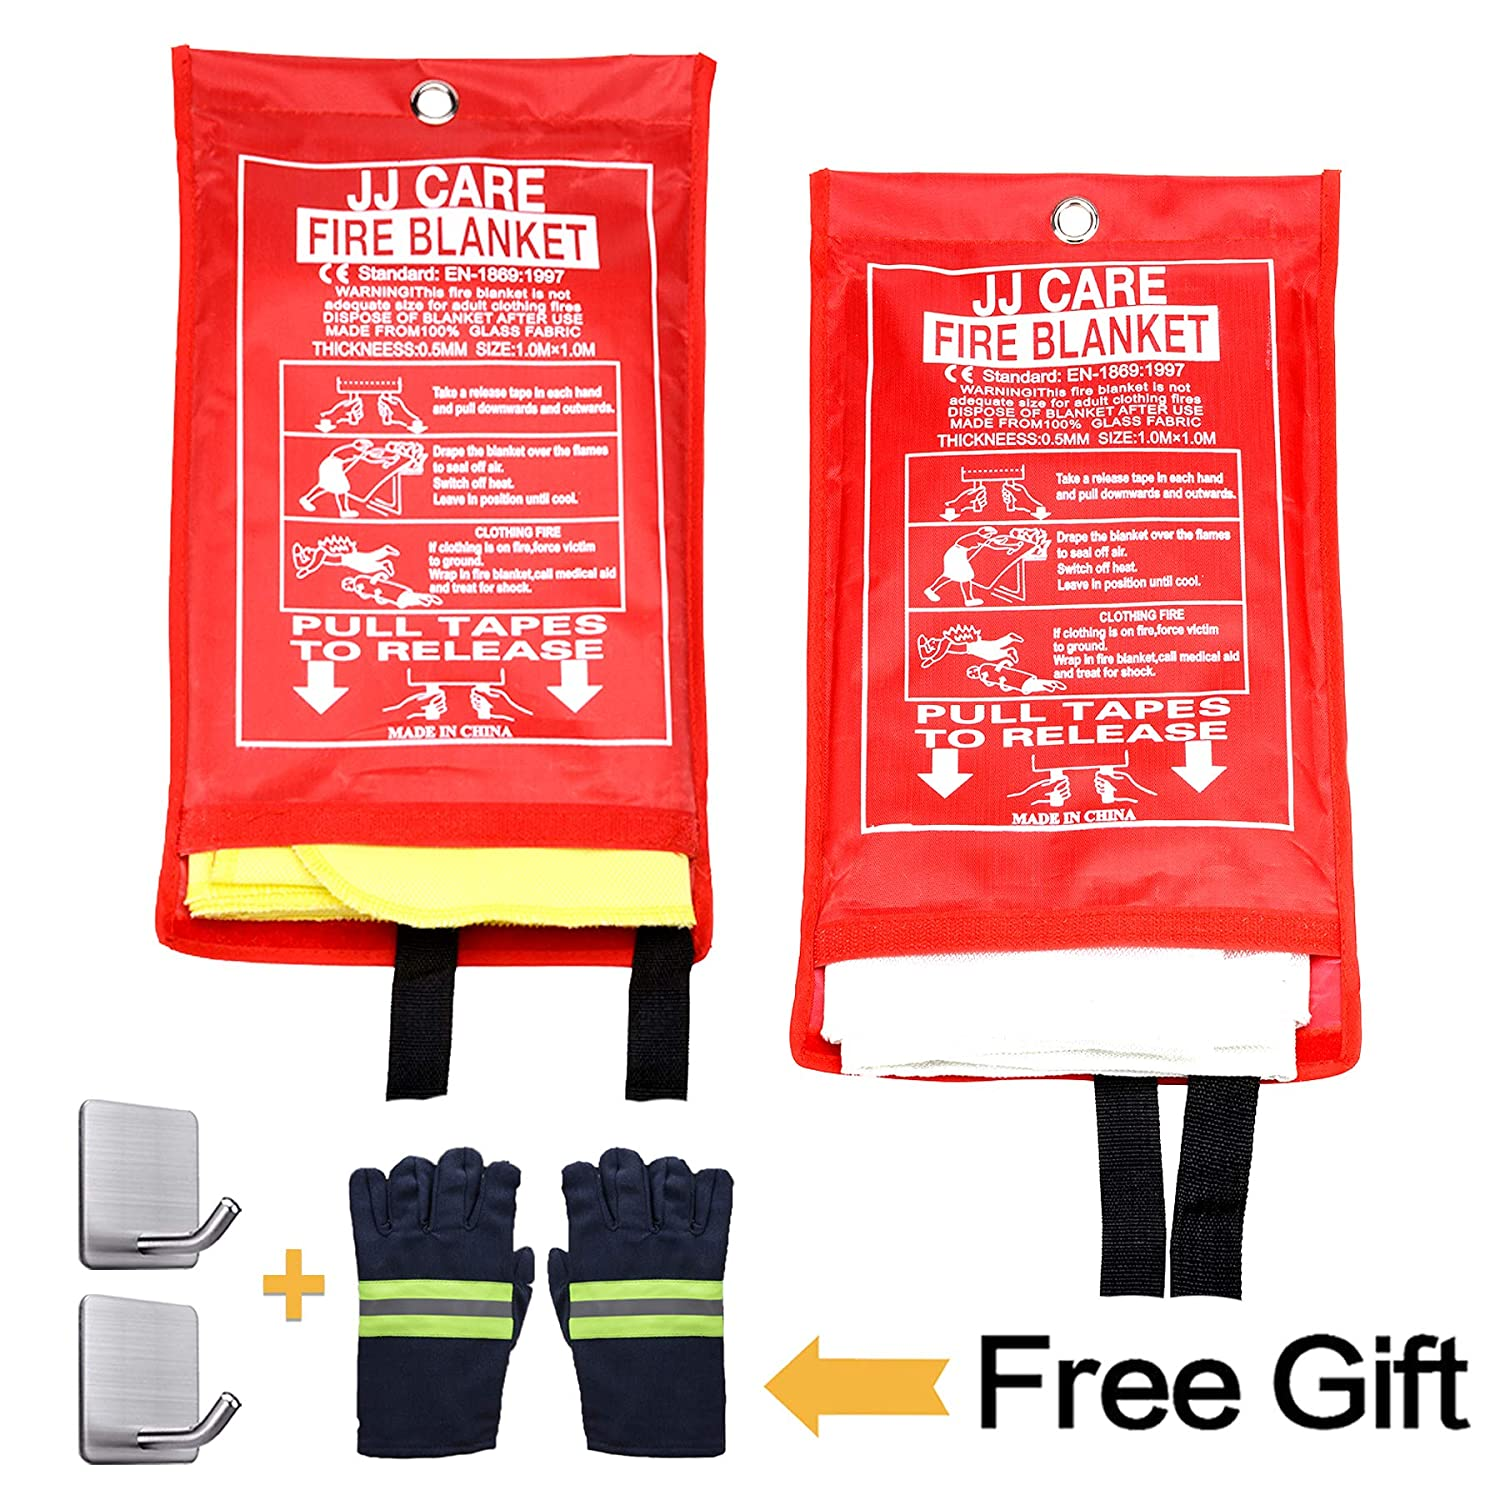 """Fire Blanket Fire Suppression Blanket Made from Silica Cloth Grilling Suitable for Camping JJ CARE Car and Fireplace Fire Retardant Blanket for Emergency 40/""""x40/"""" Upgraded Kitchen Safety"""